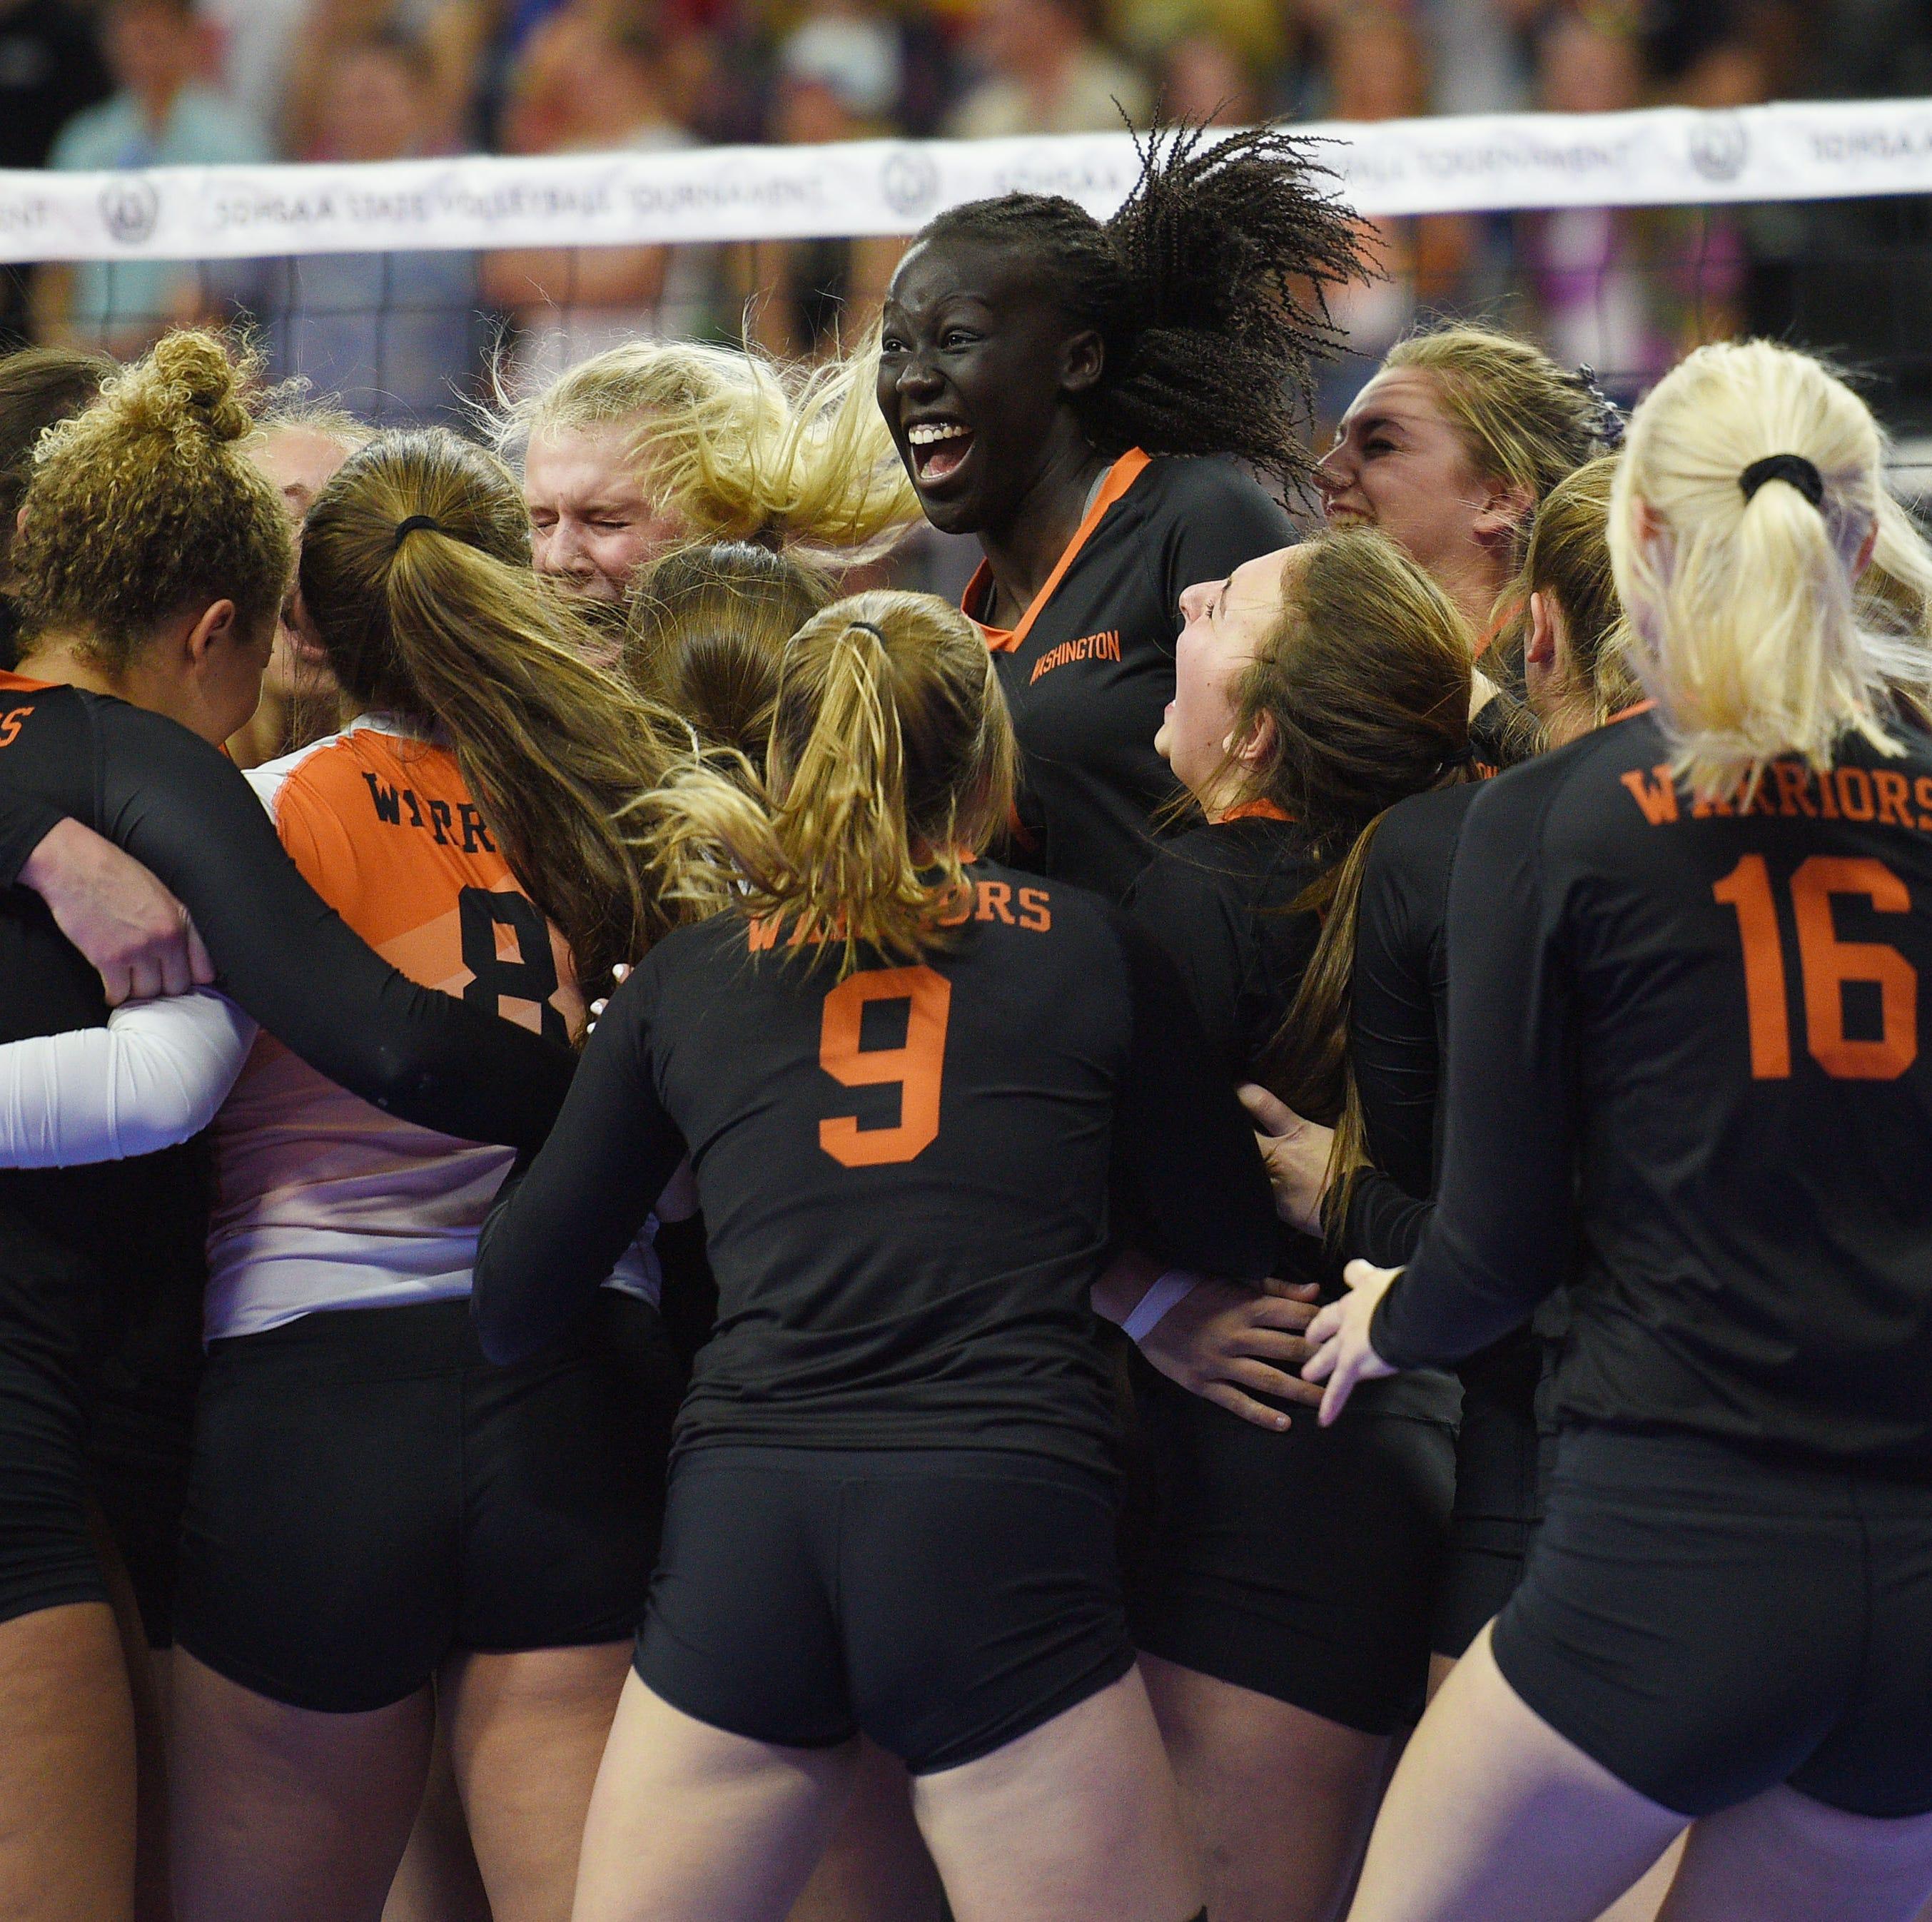 Third time's the charm: No. 2 Washington sweeps No. 3 O'Gorman to reach state final